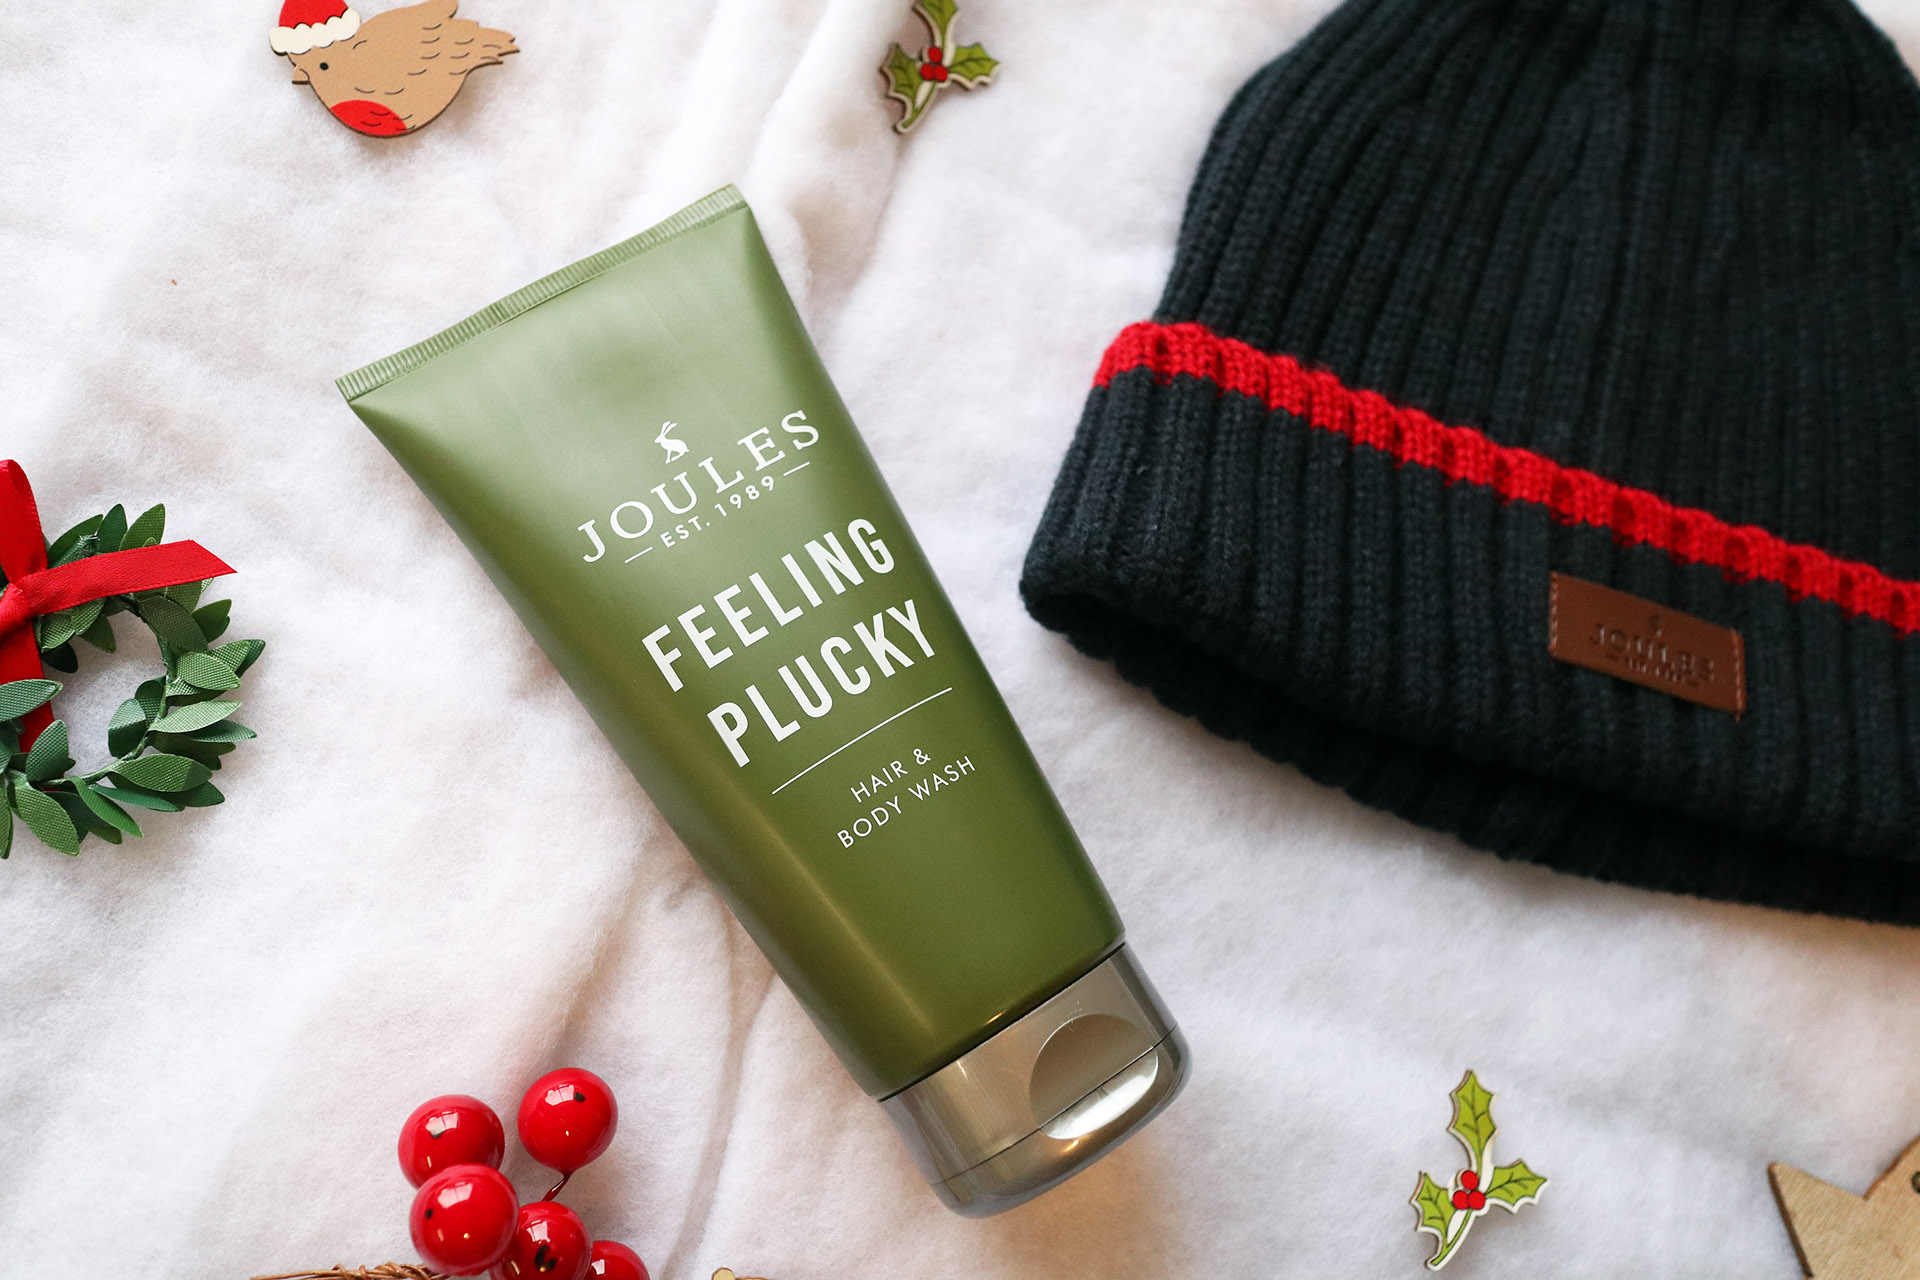 Joules Pull The Wool Over gift set unboxed